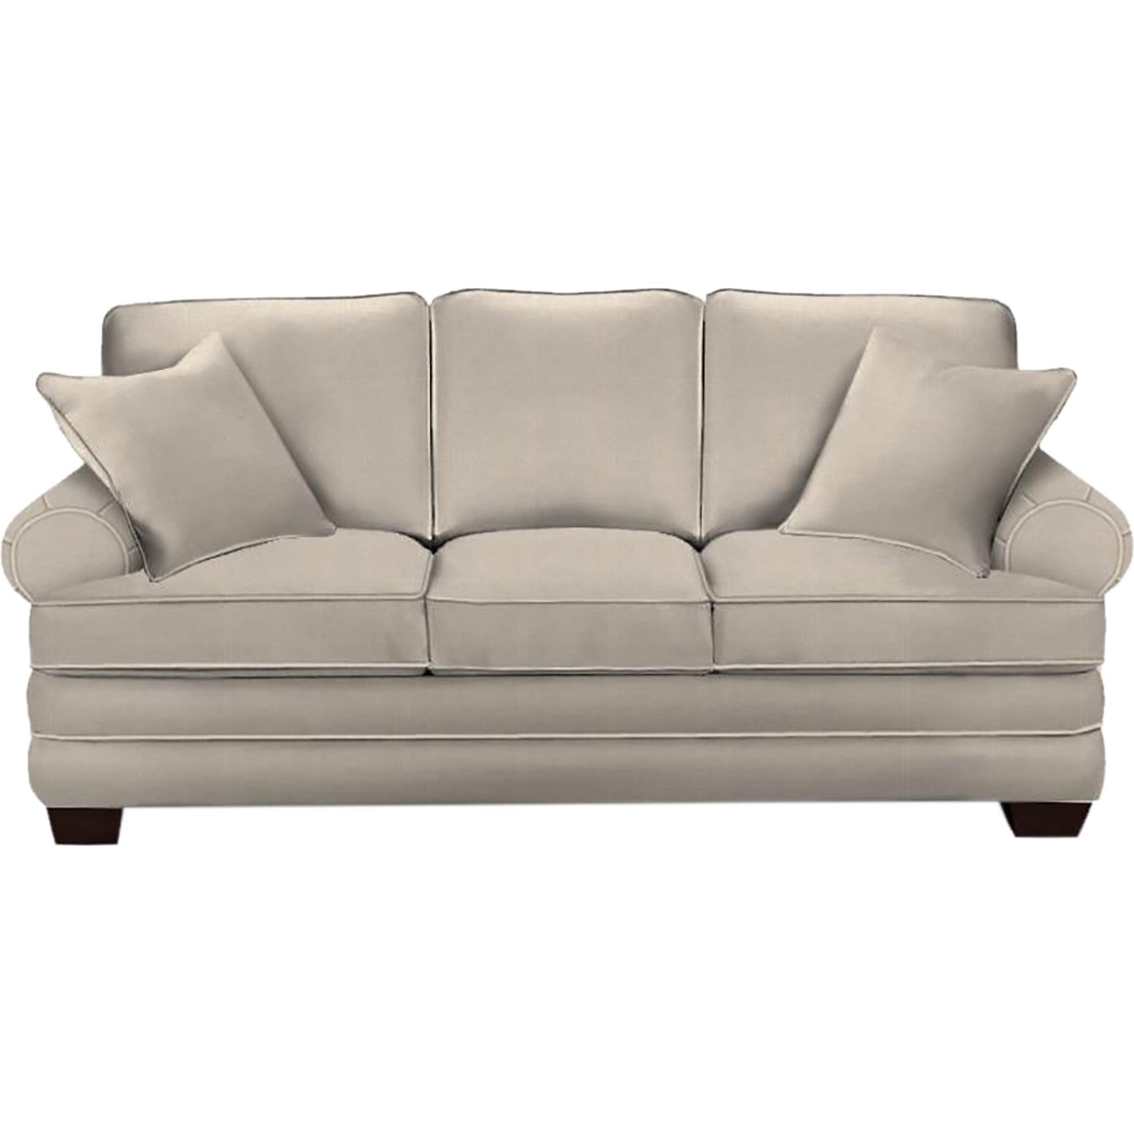 Hgtv home design studio by bassett sock arm queen sofa for Design studio sectional sofa